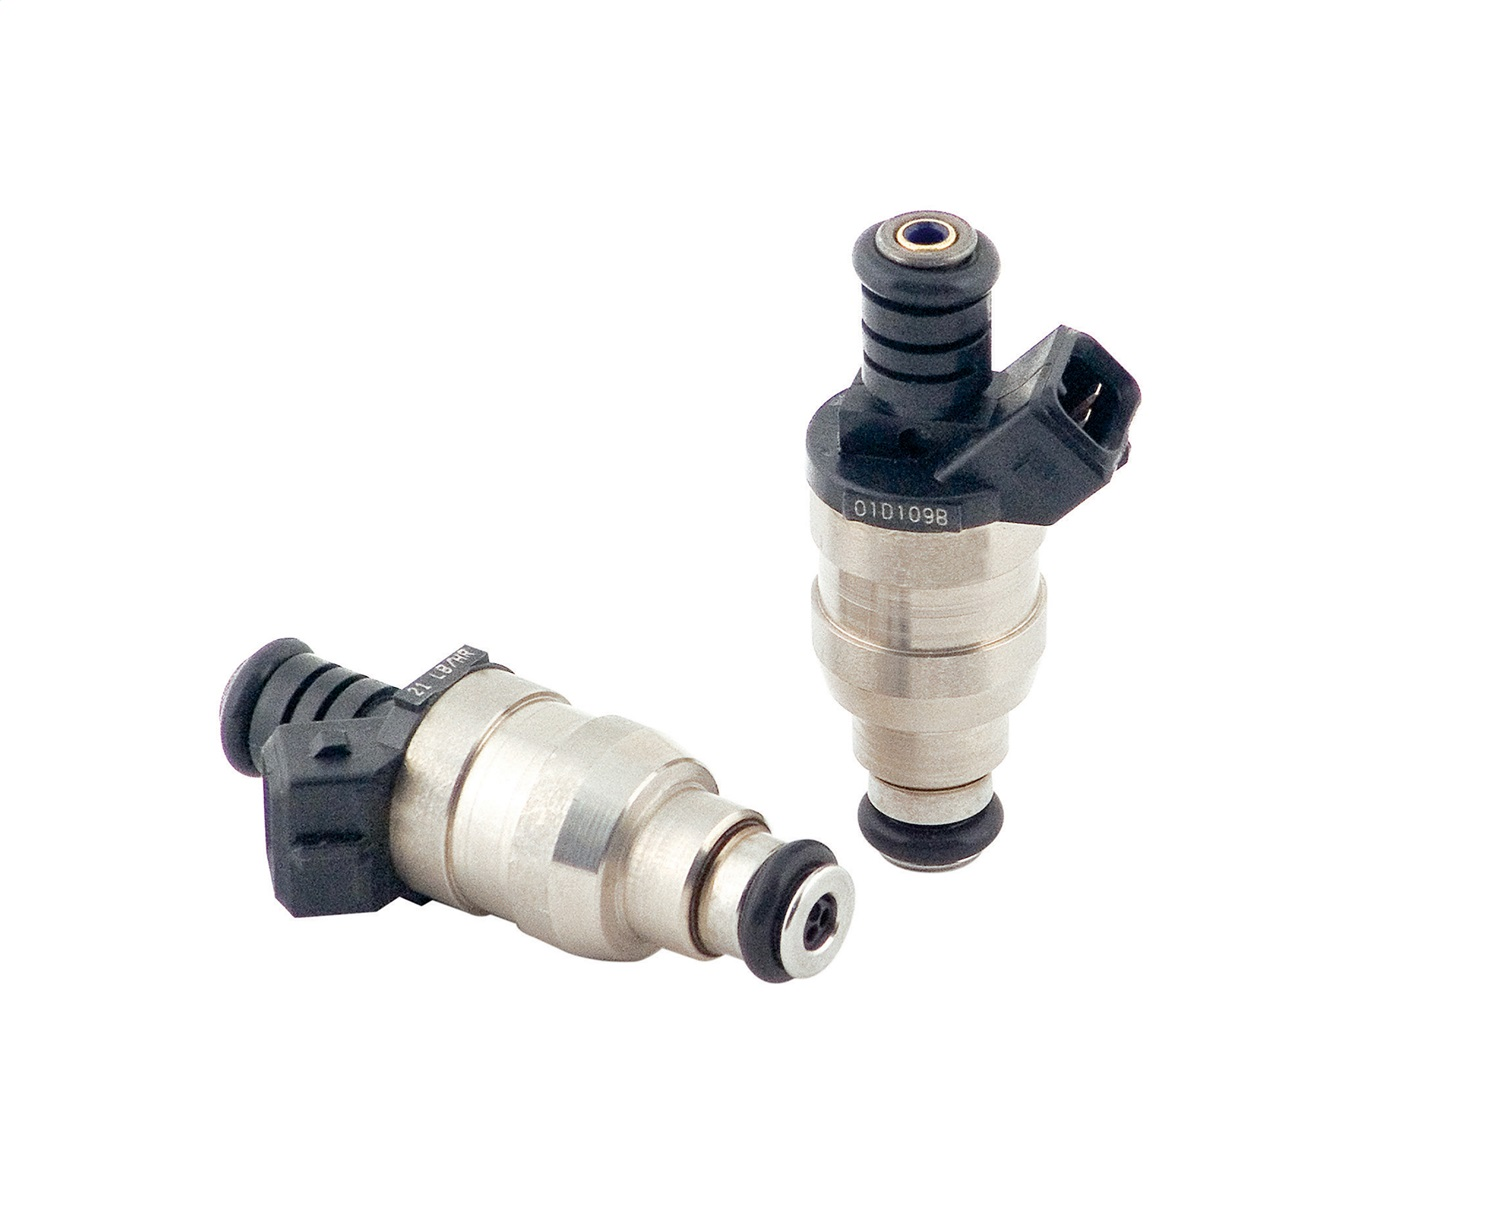 ACCEL 150132 PERF FUEL INJECTOR 32lb each